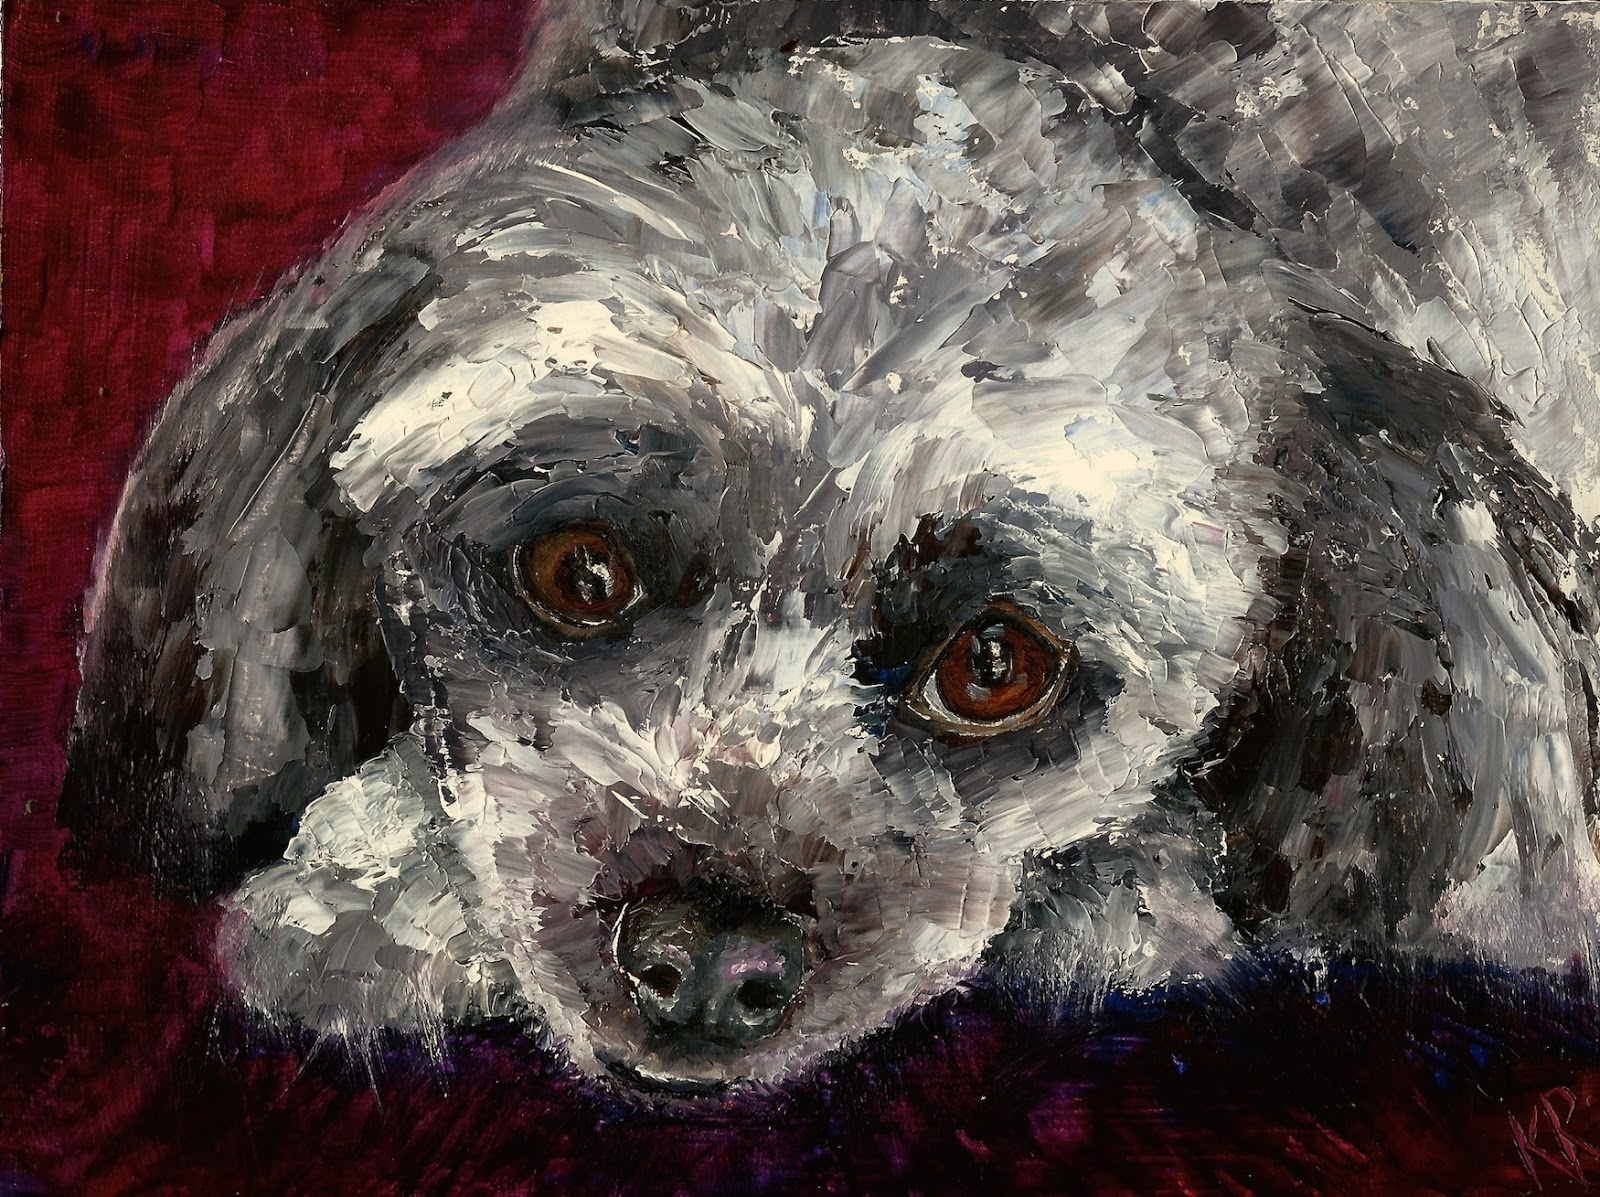 Old dogs are cute too, oil painting with a palette knife, poodle type dog, a pet portrait by karen